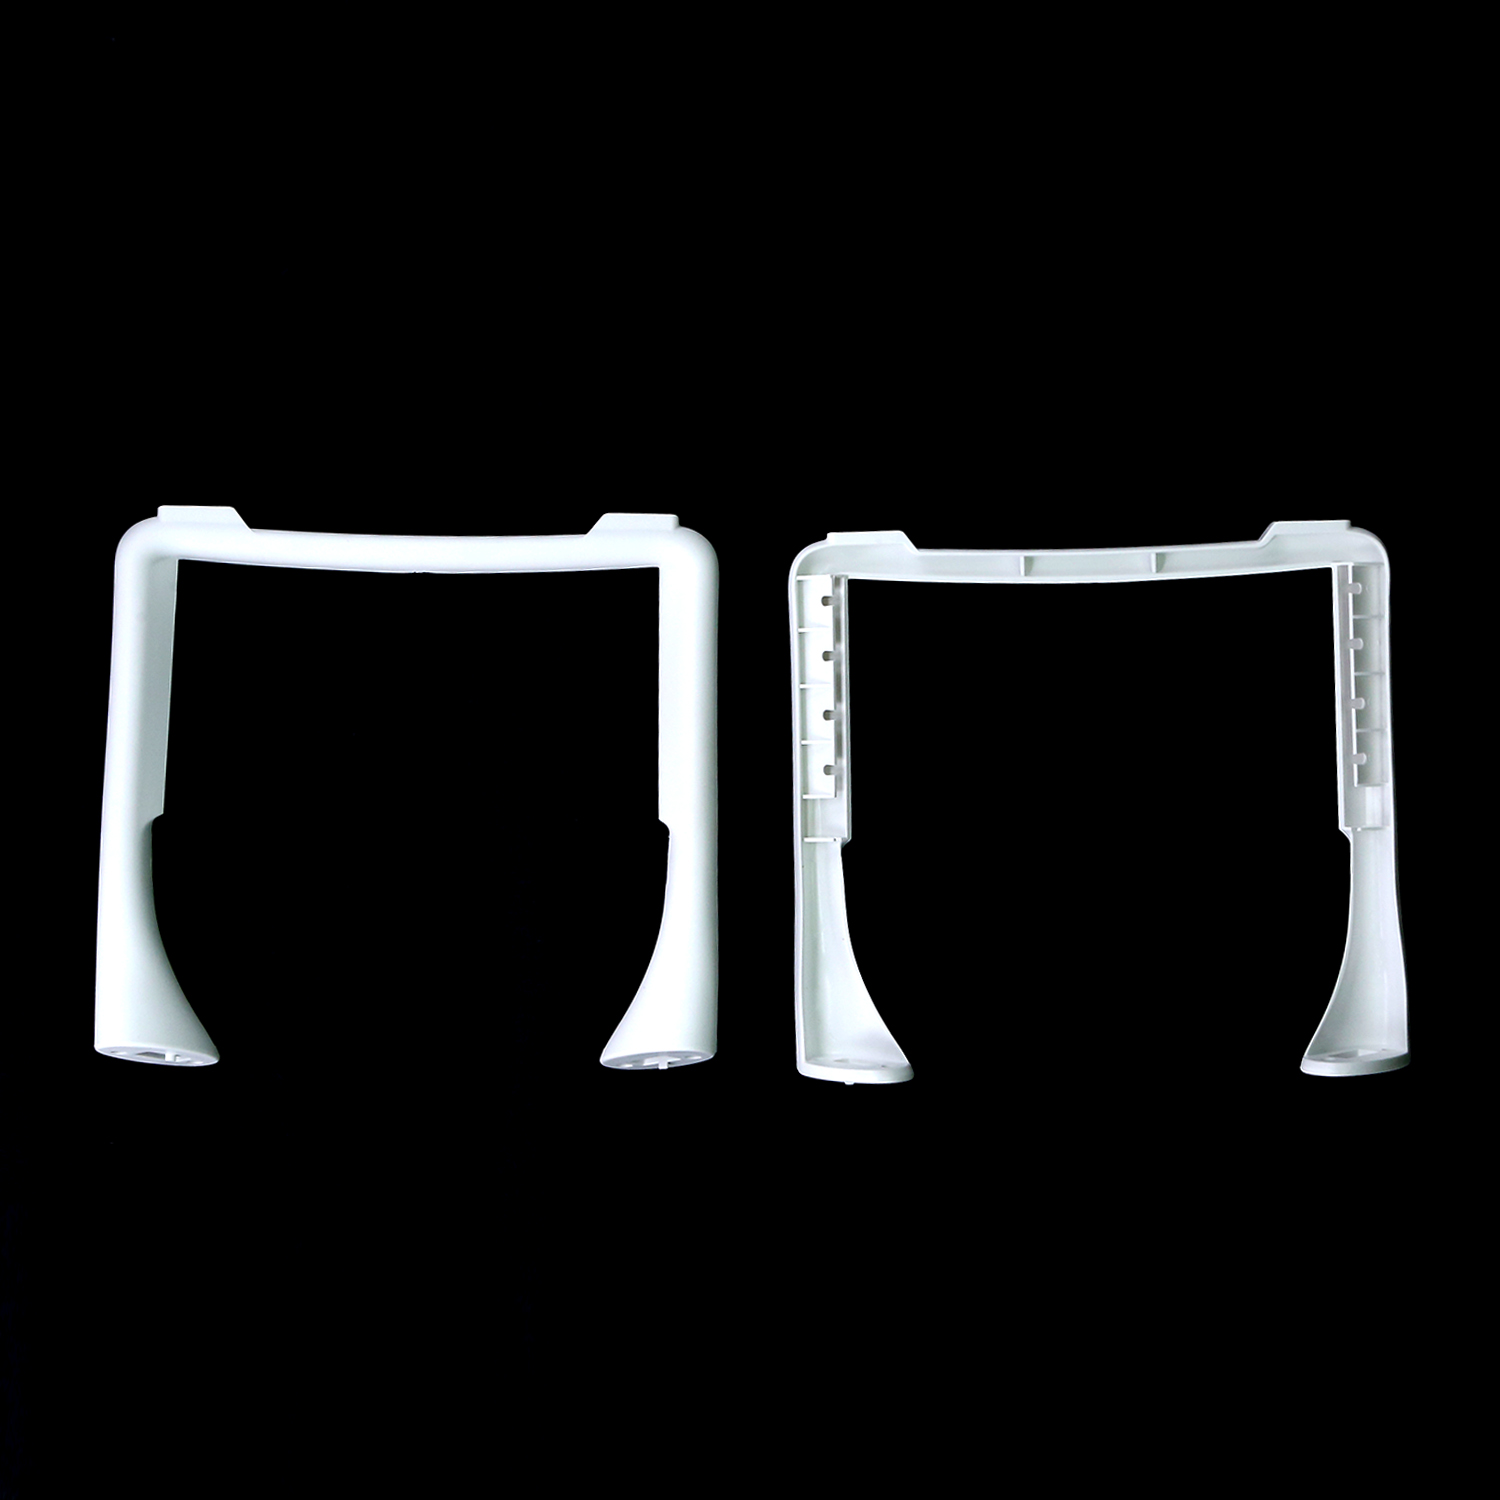 Image 4 - New Body Shell Top Bottom Cover Landing Gear for DJI Phantom 3 Pro/Adv Drone-in Parts & Accessories from Toys & Hobbies